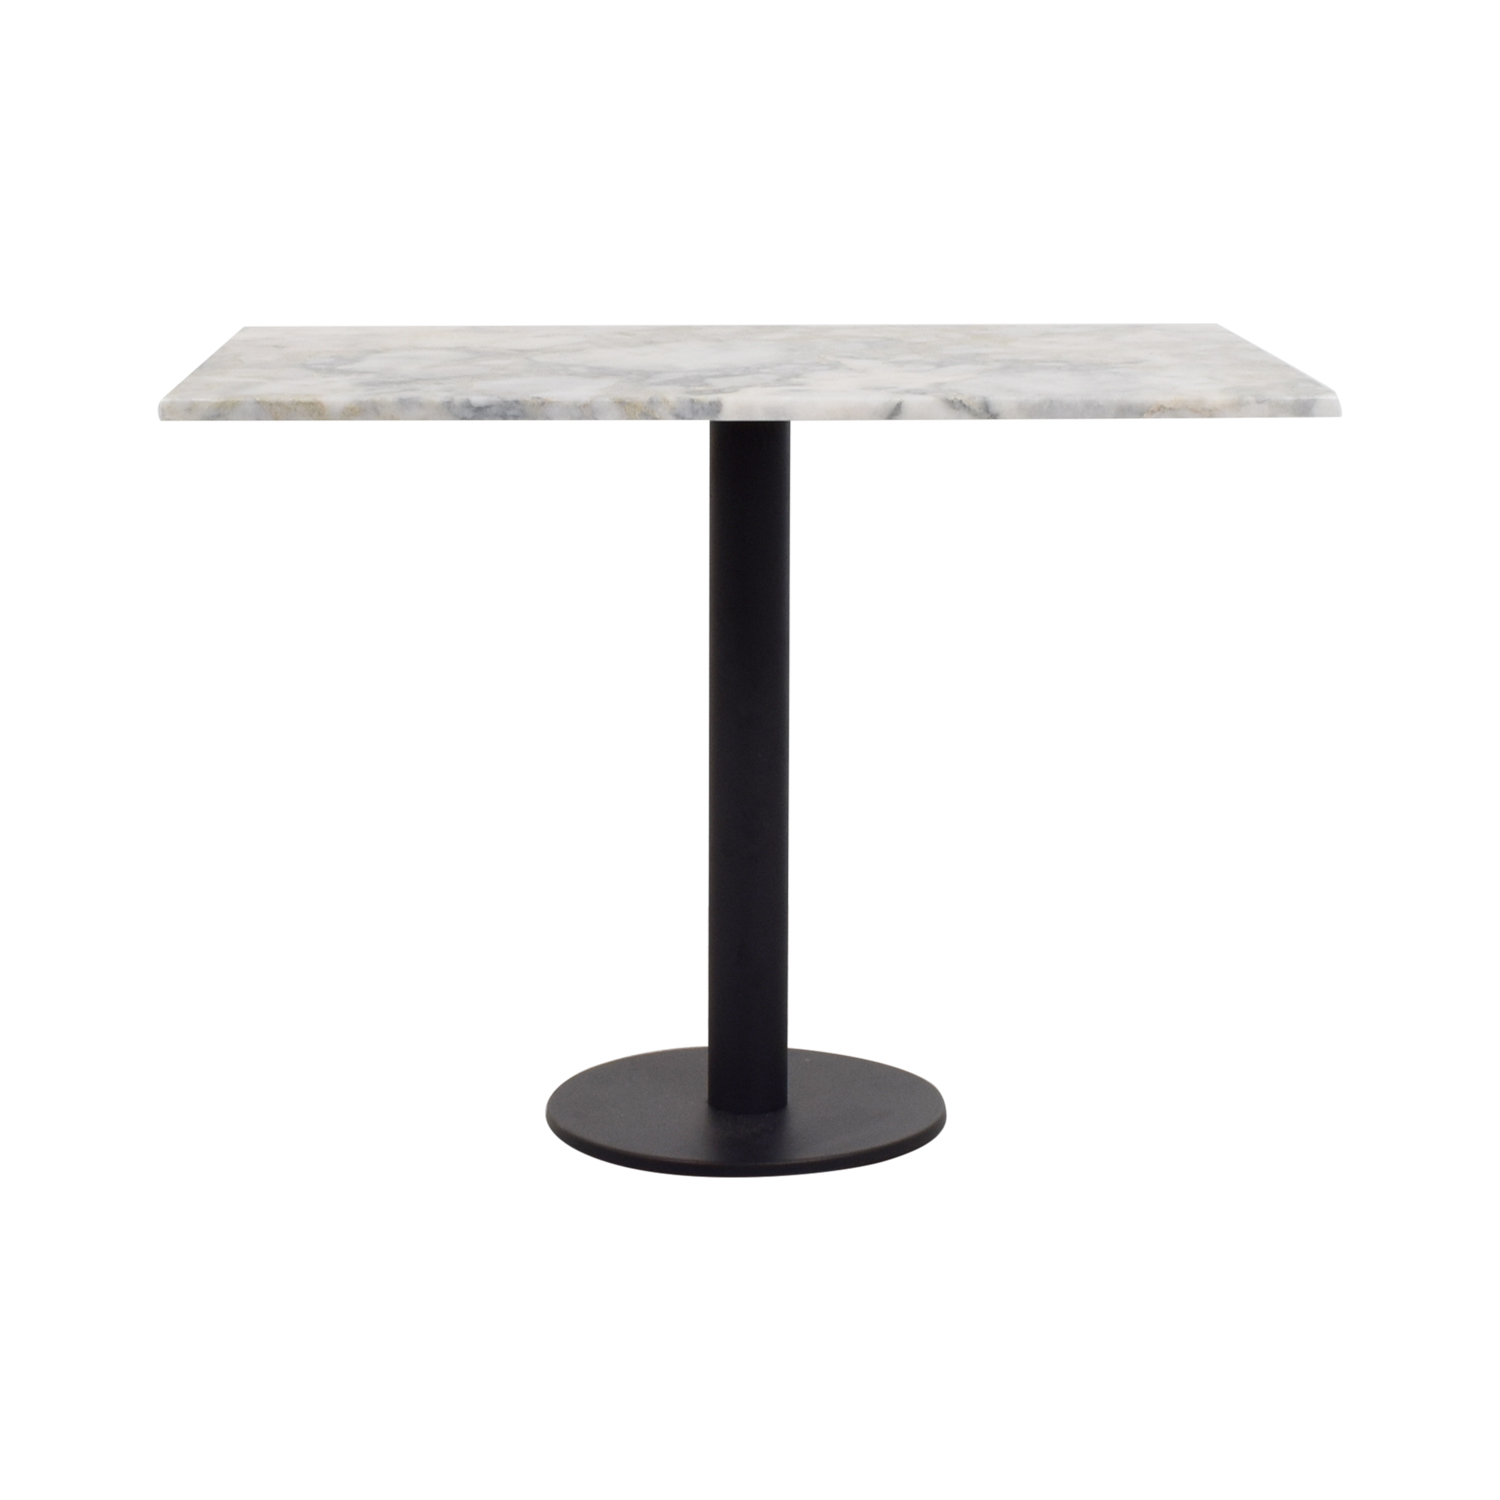 Lotus Lotus White and Gray Rectangular Marble Table Tables